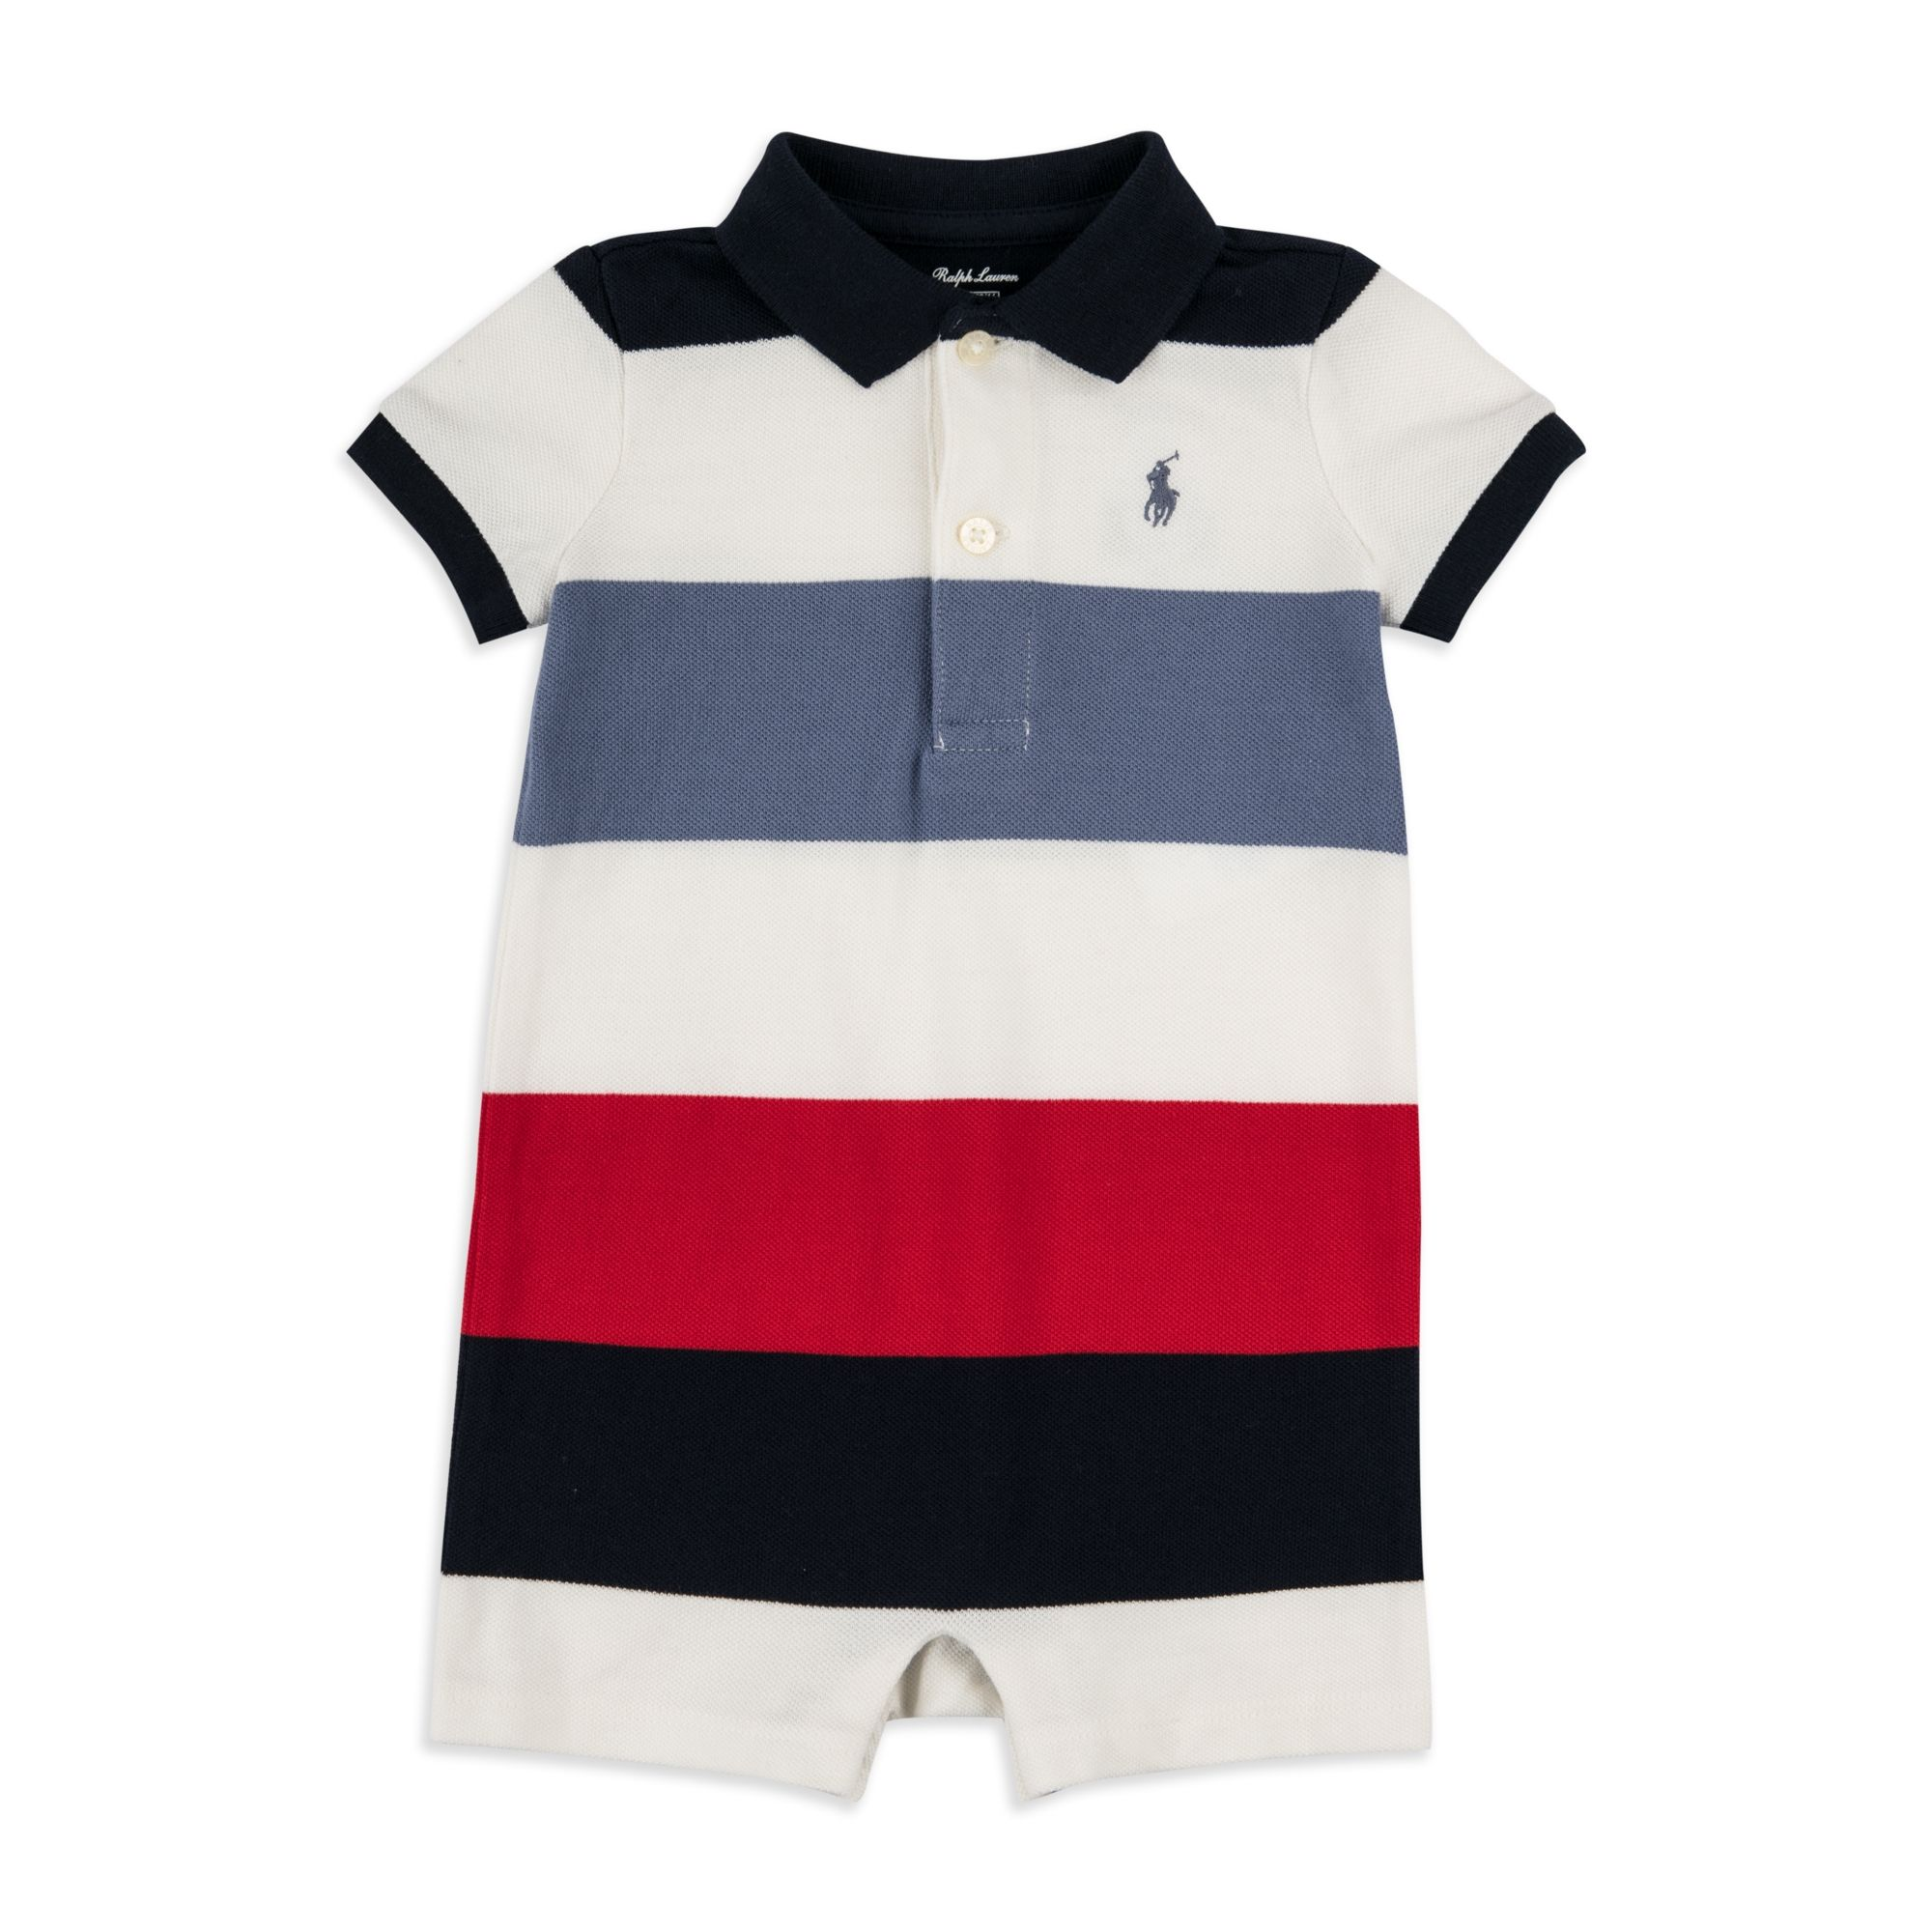 1bfd7ecb1 RALPH LAUREN Baby Boys Colour-Block Polo Shortall - Multi Ralph Lauren baby  boys shortall in soft cotton pique will make a great addition to any  wardrobe.